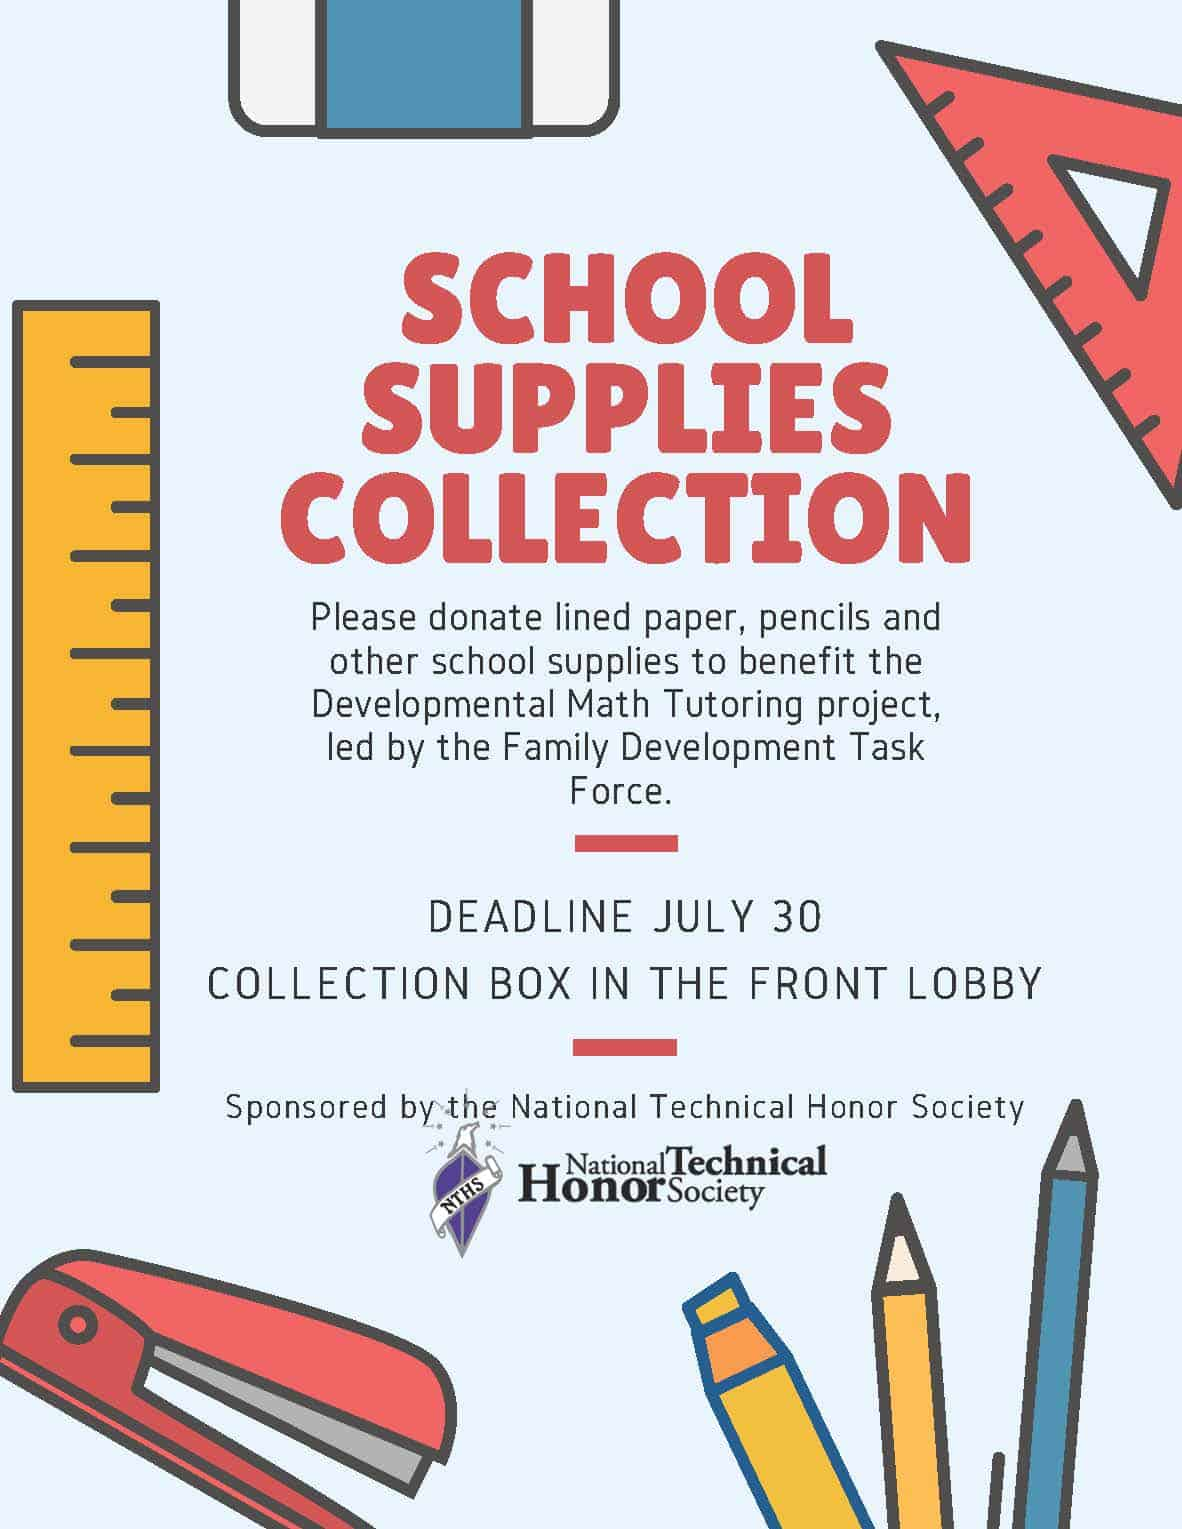 """Flyer reads """"Please donate lined paper, pencils and other school supplies to benefit the Developmental Math Tutoring project, led by the Family Development Task Force. DEADLINE JULY 30 COLLECTION BOX IN THE FRONT LOBBY"""""""